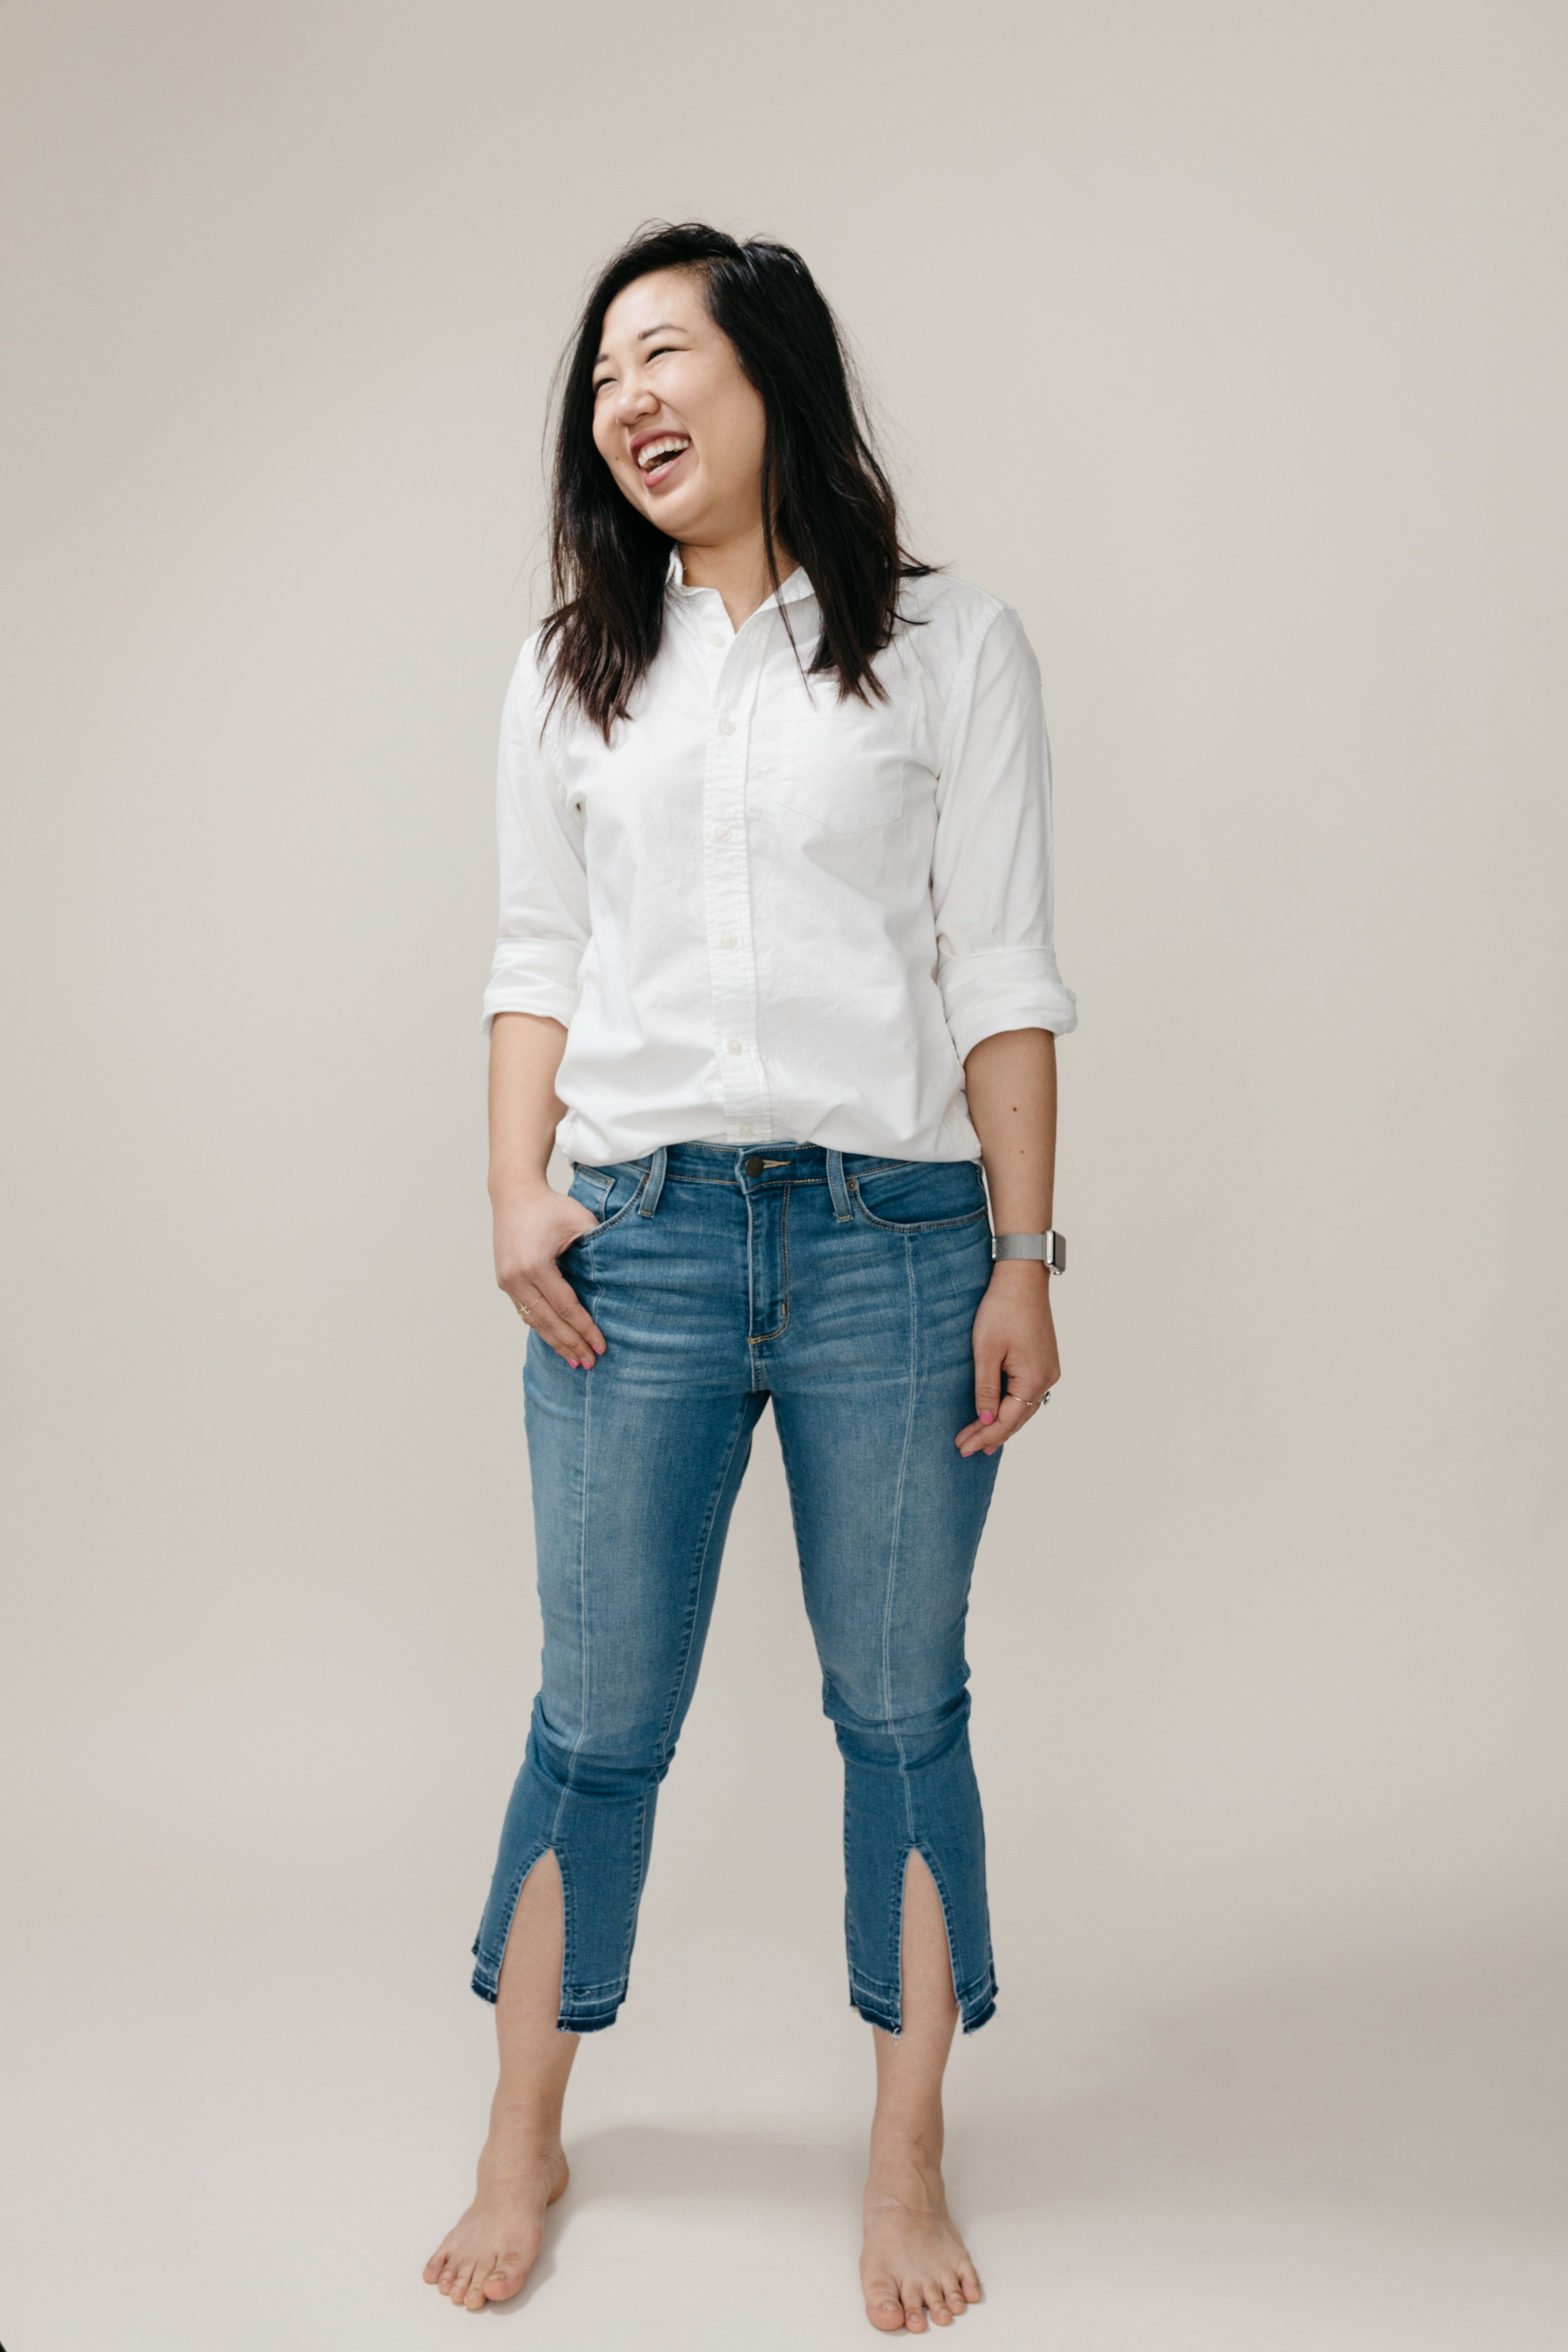 7f142787a64454 This Is What Target's Universal Thread Denim Looks Like On 15 Different  Body Types